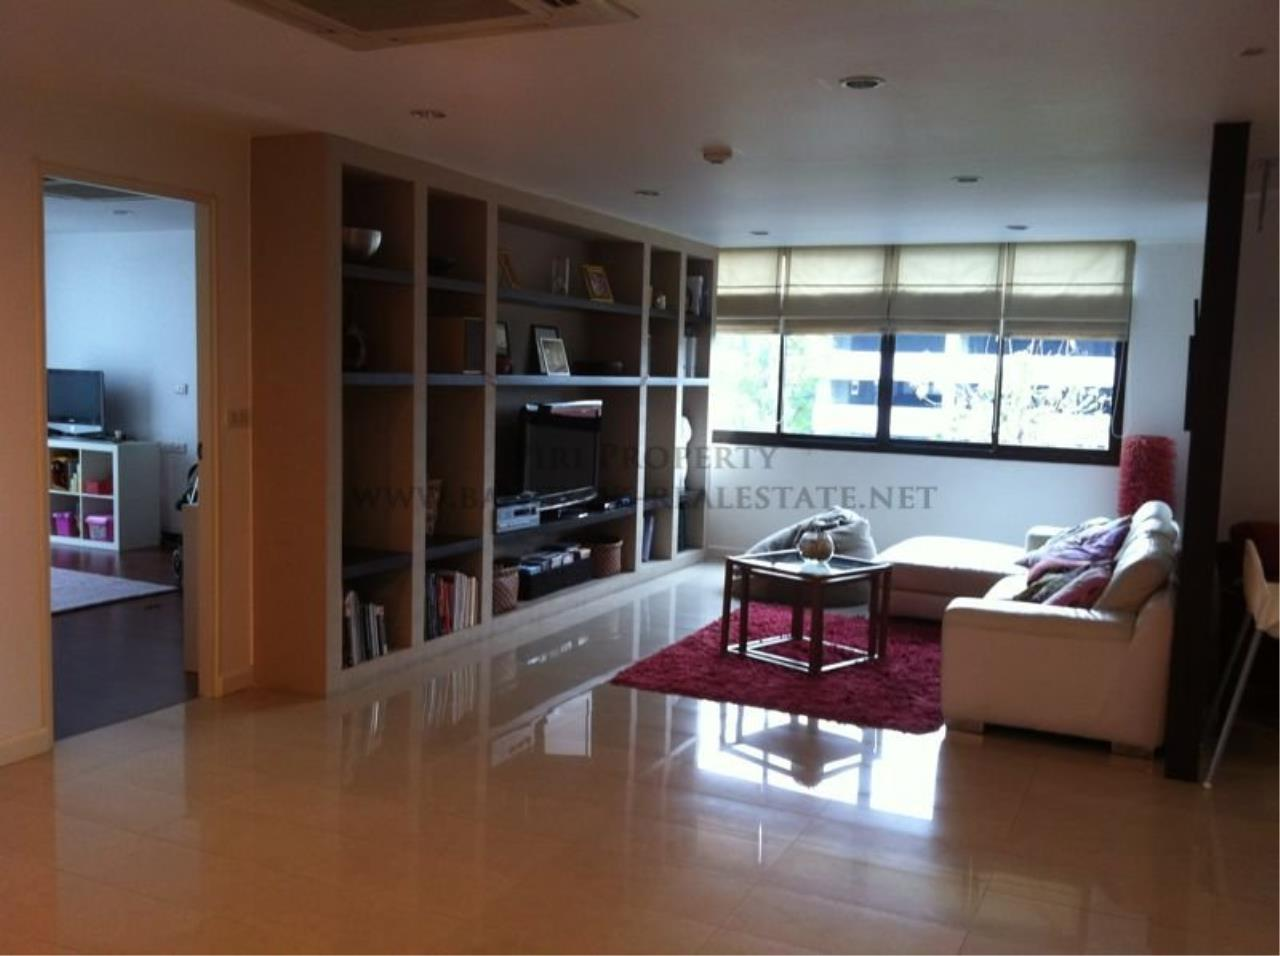 Piri Property Agency's Baan Ananda - Luxurious and Spacious 3 plus 1 BR Condo for Sale 2